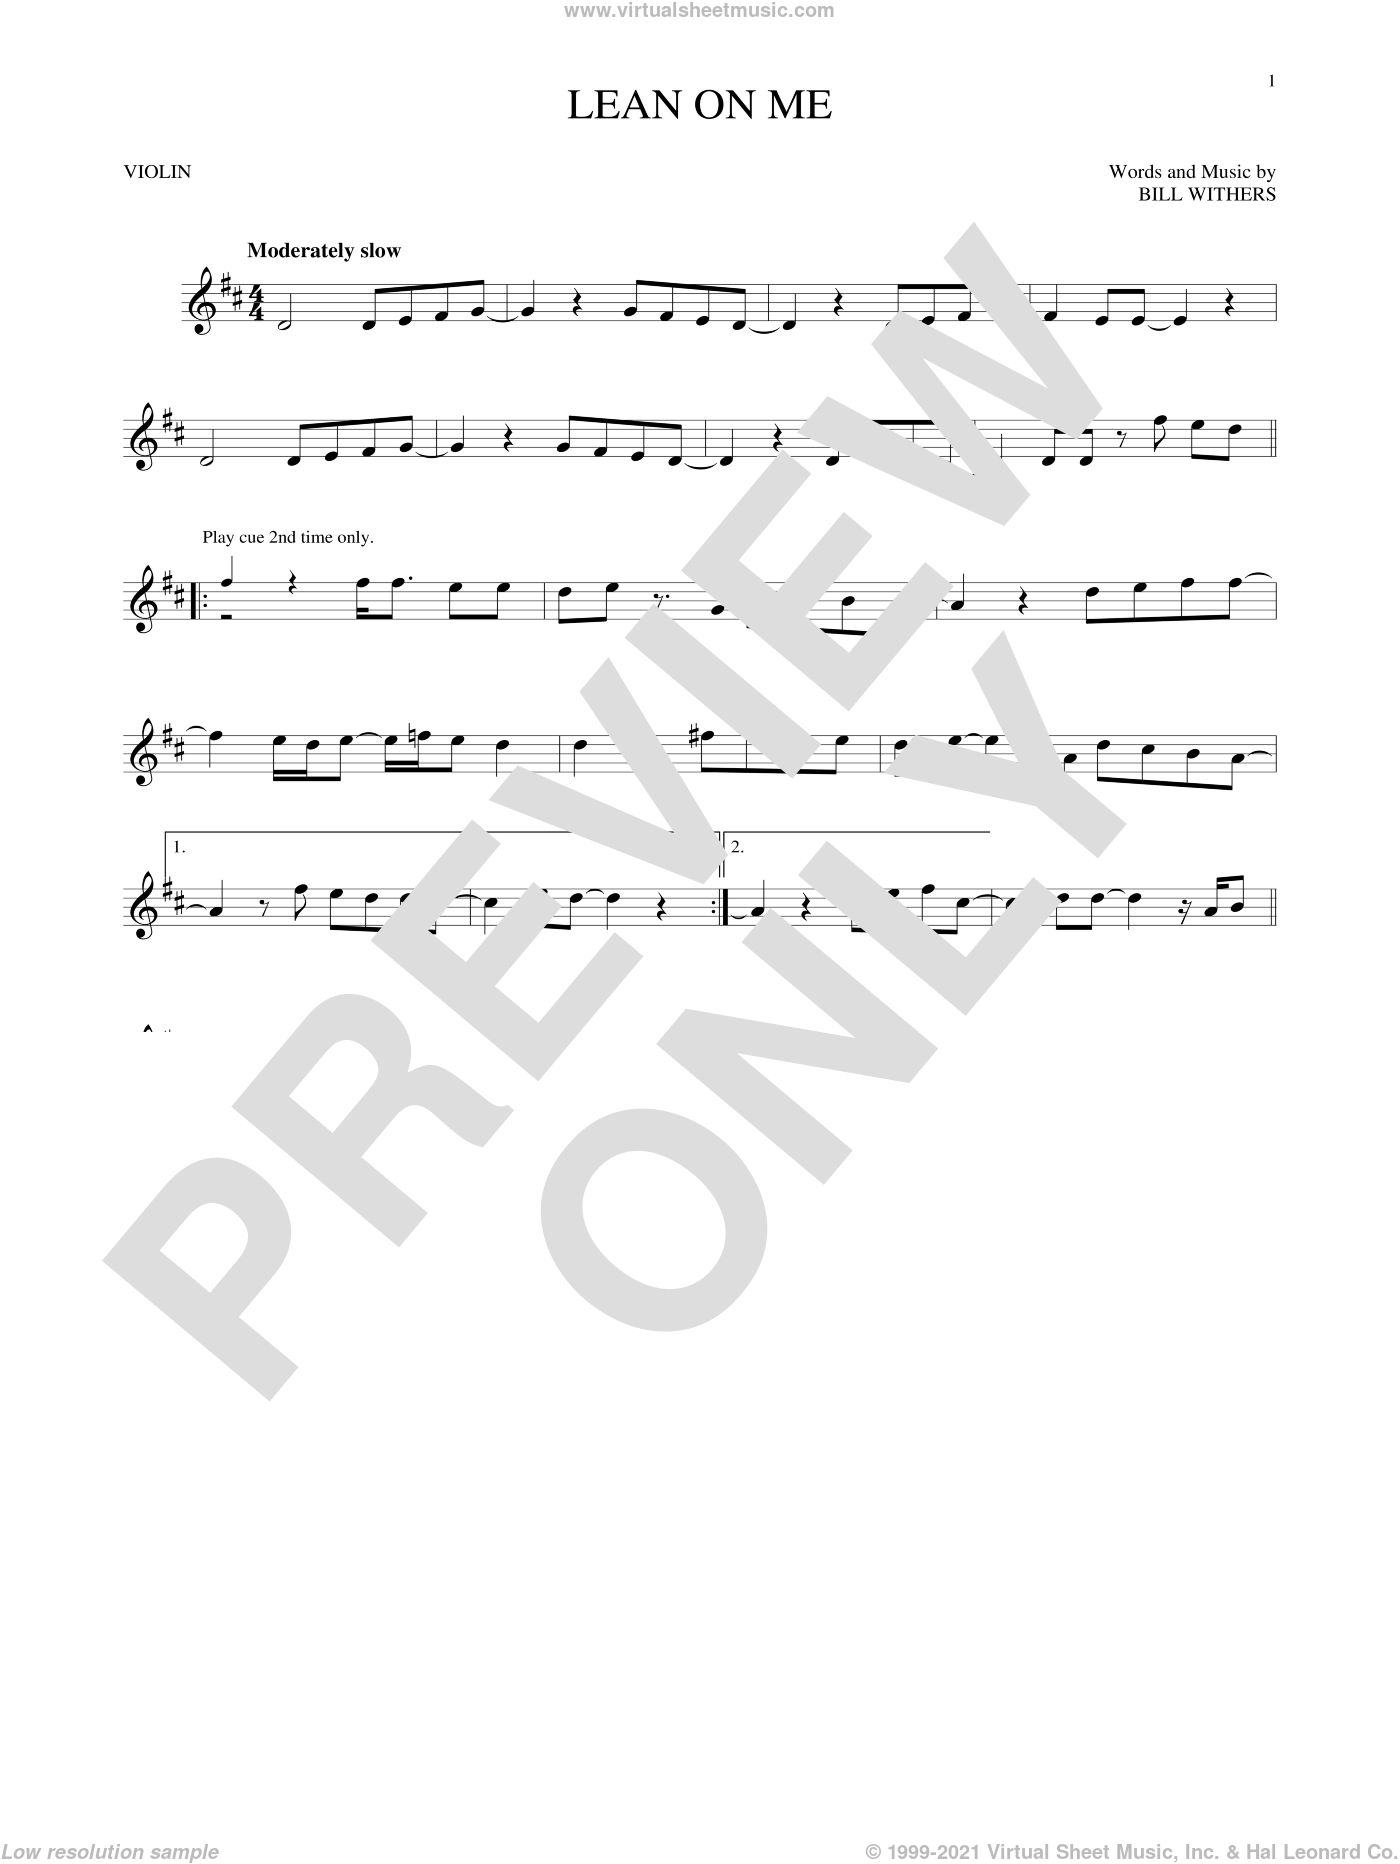 Lean On Me sheet music for violin solo by Bill Withers, intermediate skill level